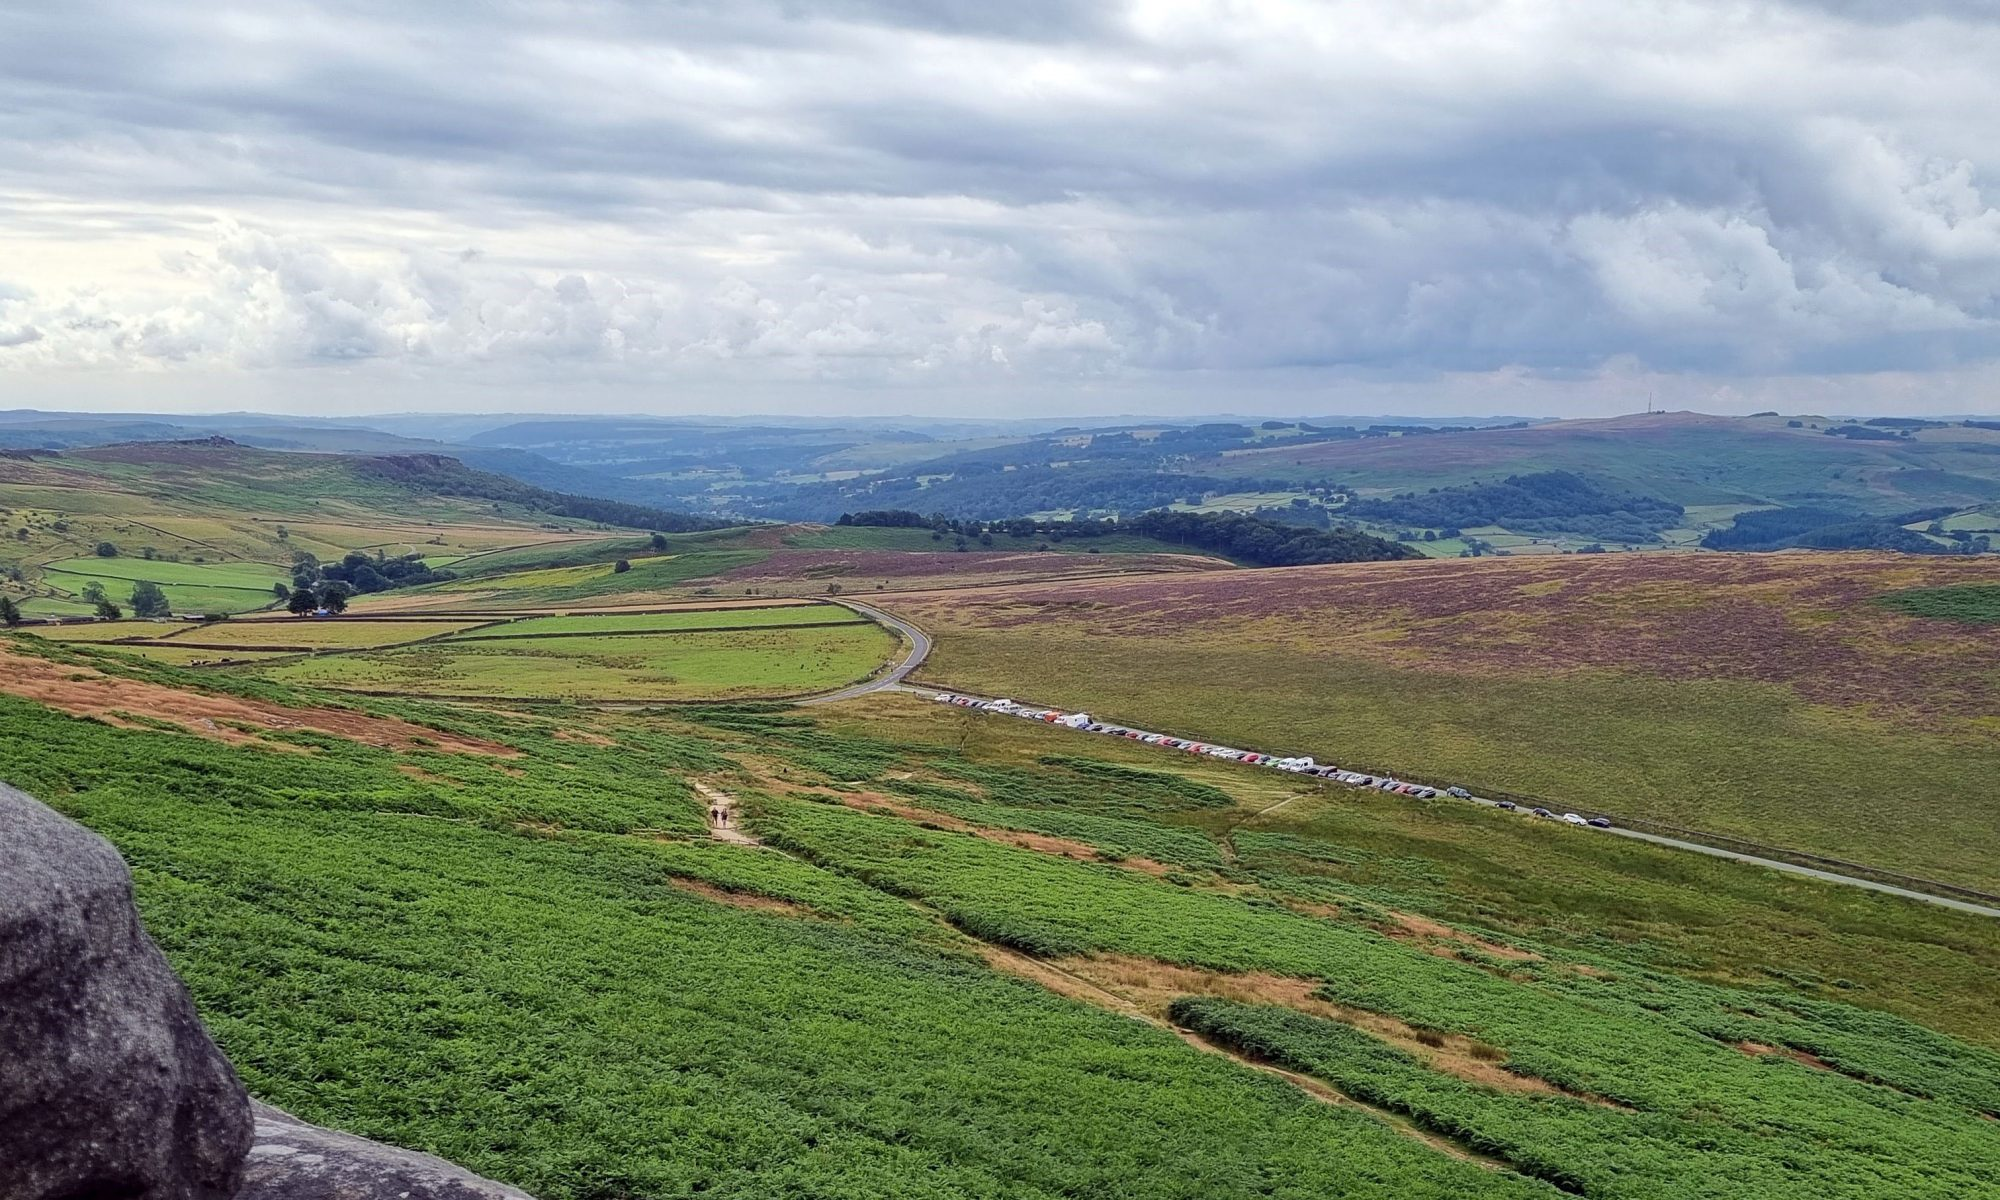 The majestic view from Stanage Edgee